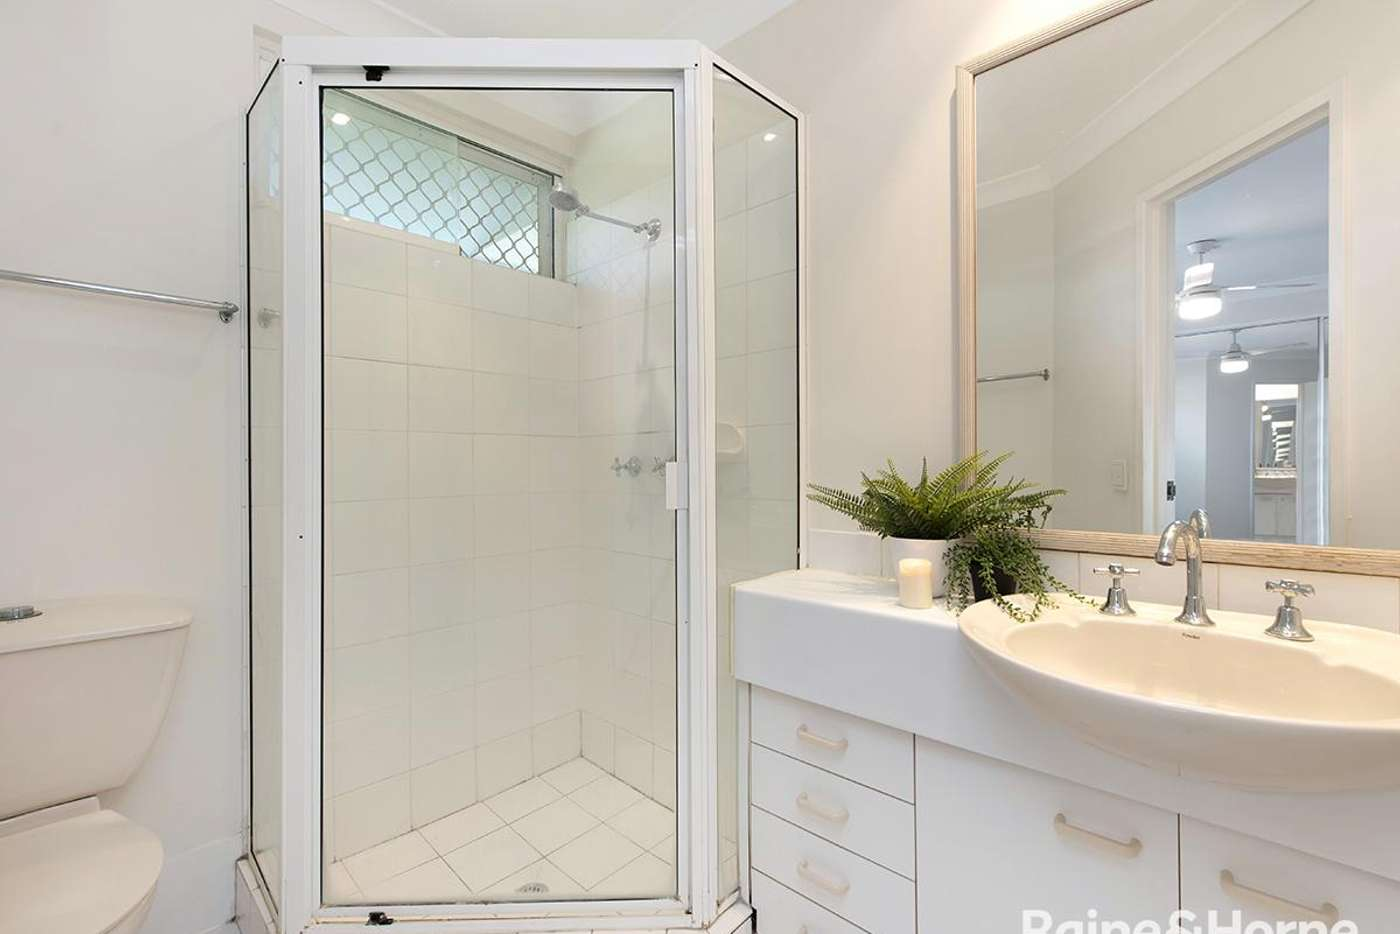 Seventh view of Homely unit listing, 11/212 Sir Fred Schonell Drive, St Lucia QLD 4067